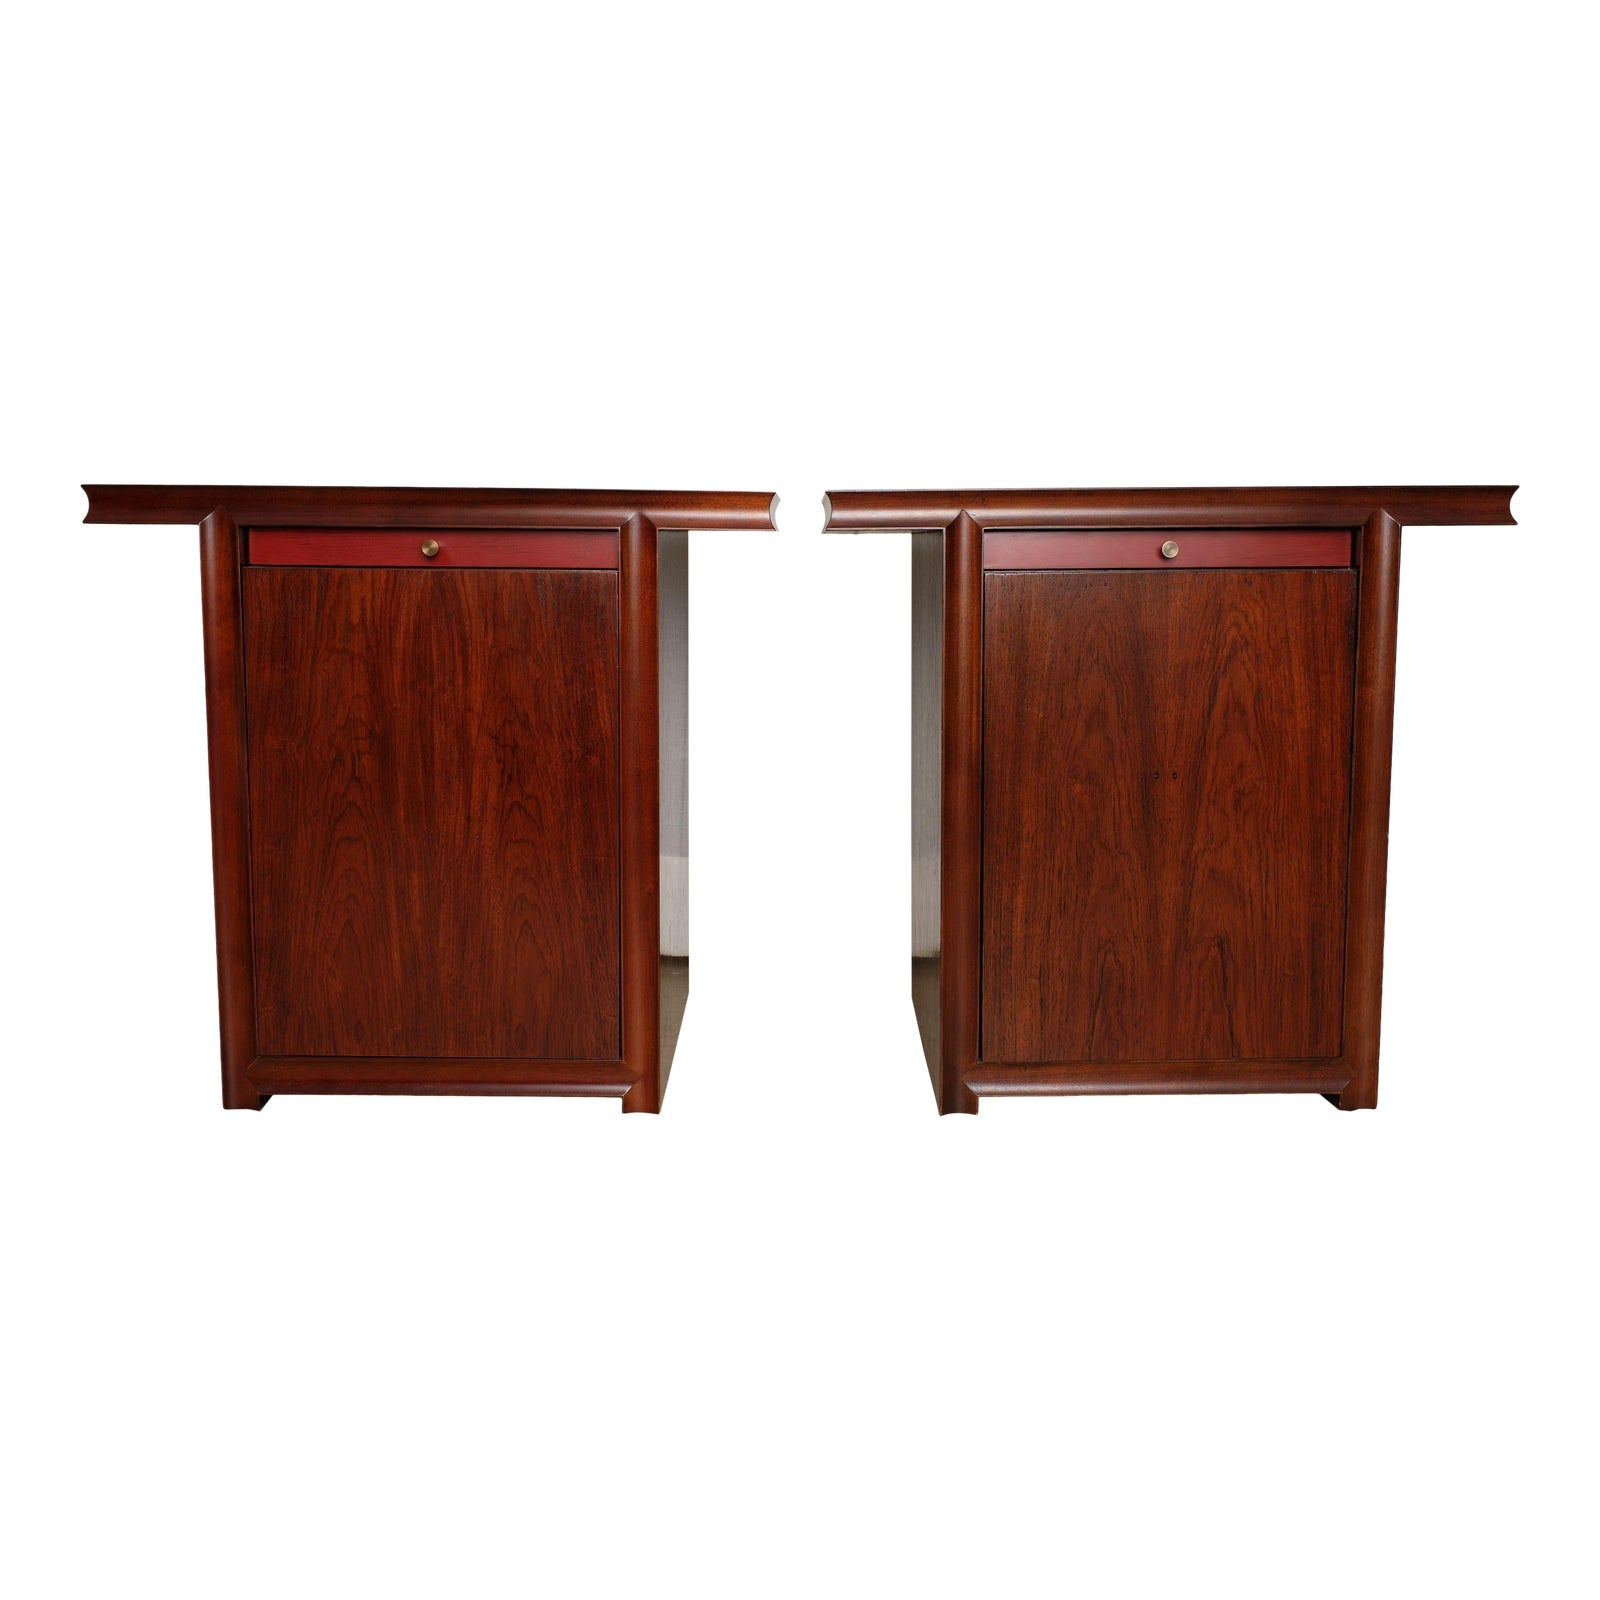 Bolier Kimono Collection Side Tables - Pair